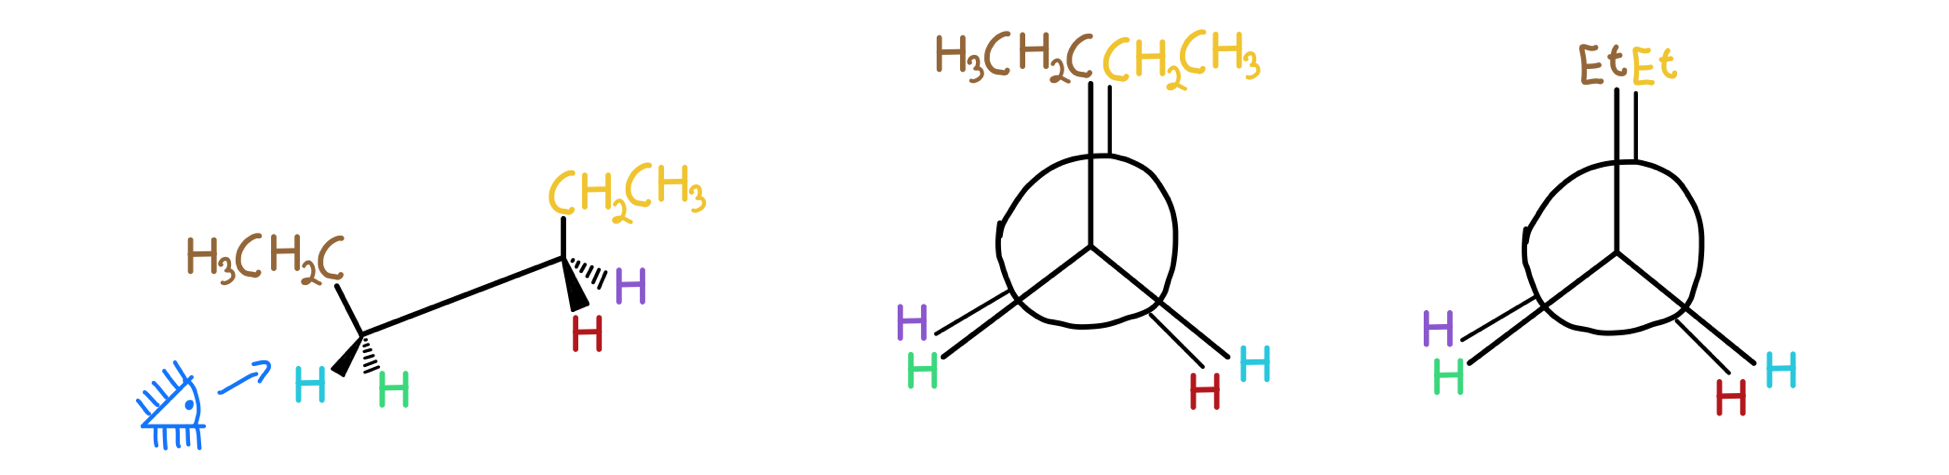 Totally-eclipsed-hexane